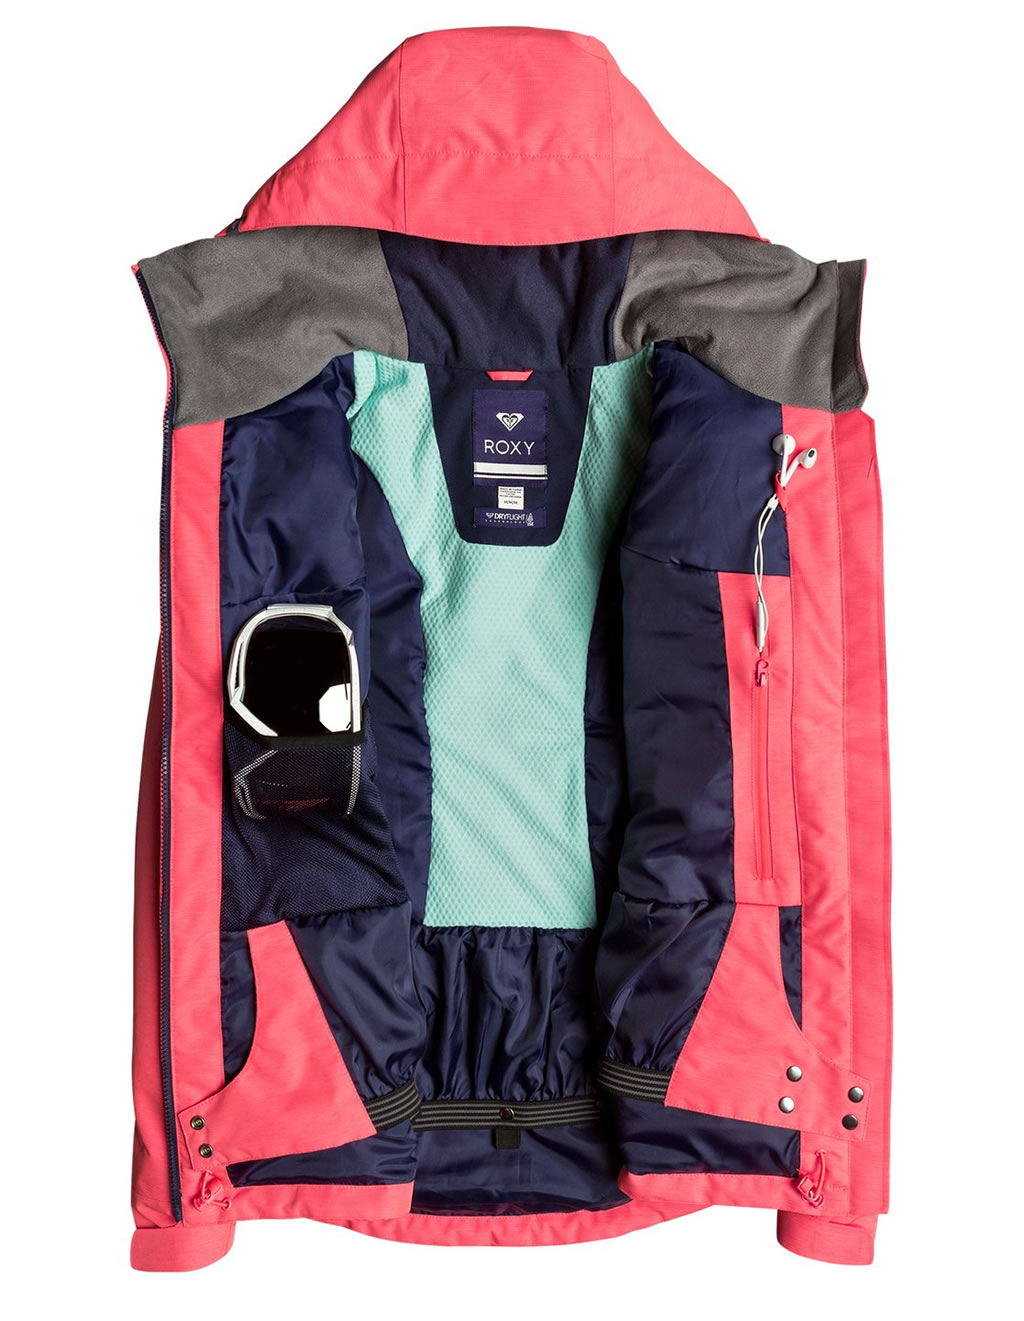 Wildlife Snow Jacket by Roxy, Layers